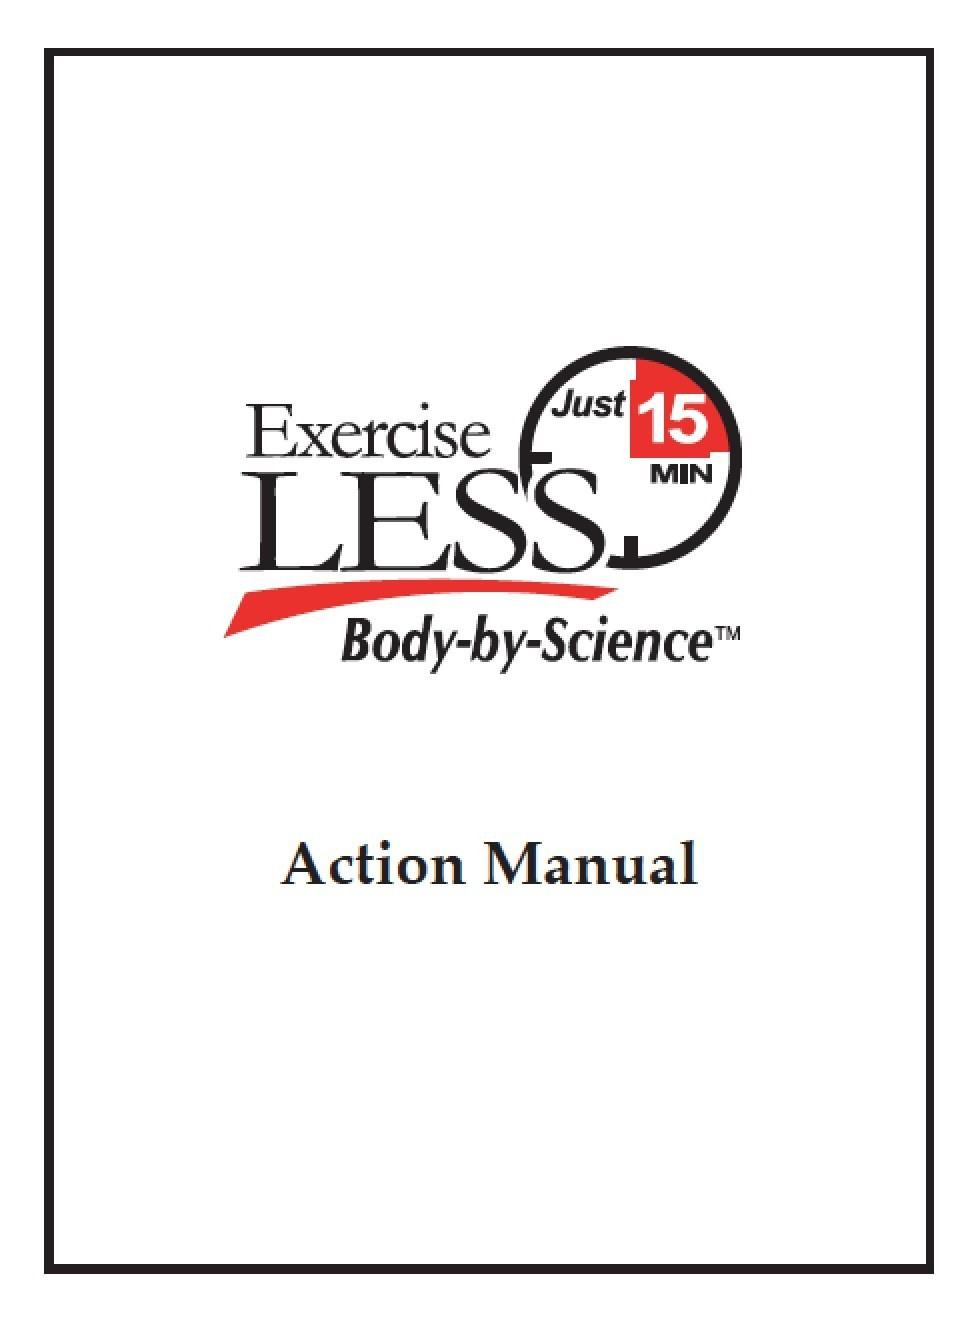 Exercise-Less